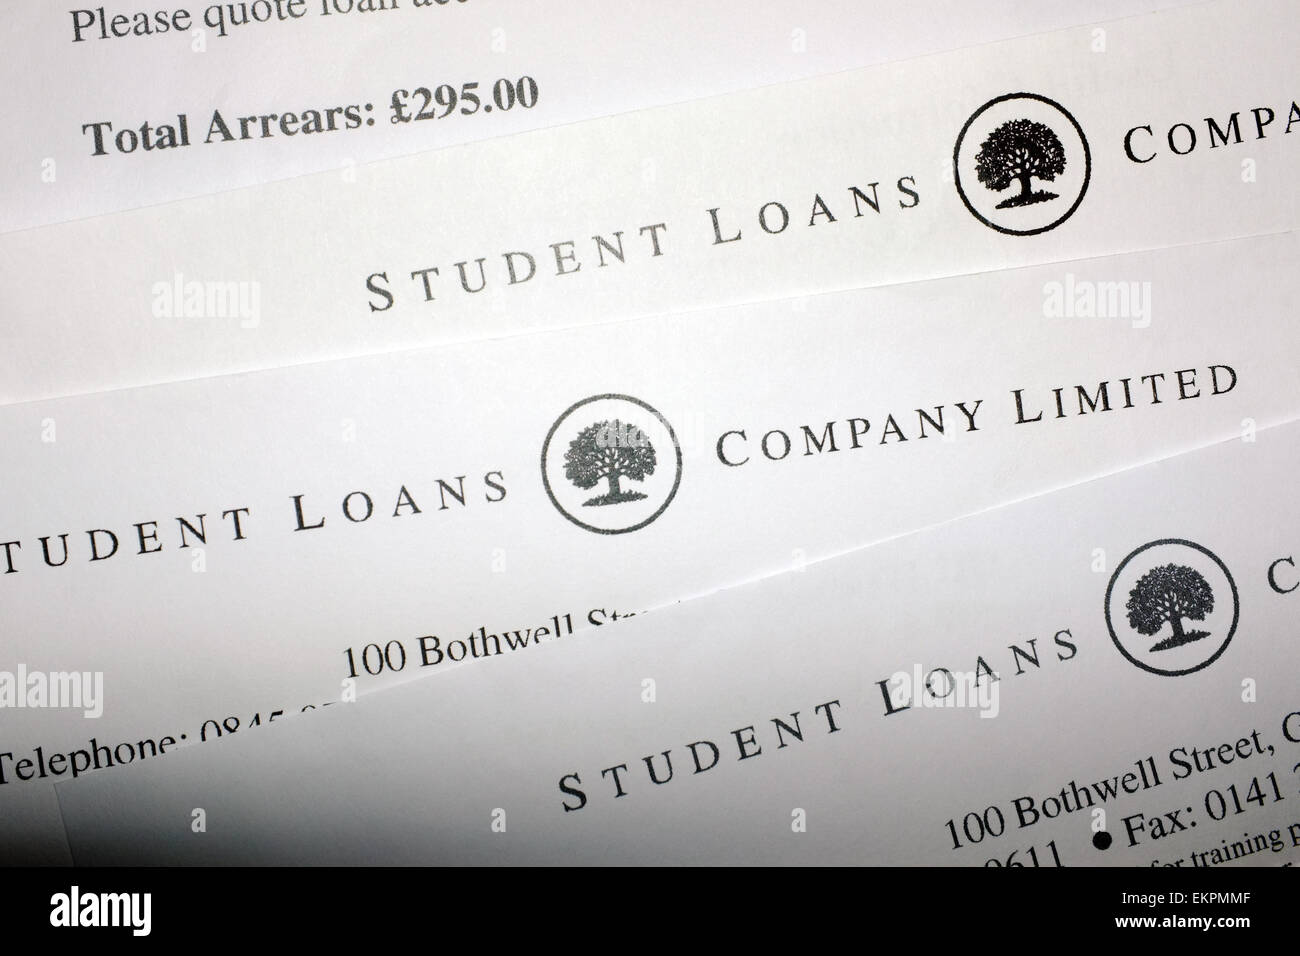 Several Student Loans letters and an arrears notification. - Stock Image